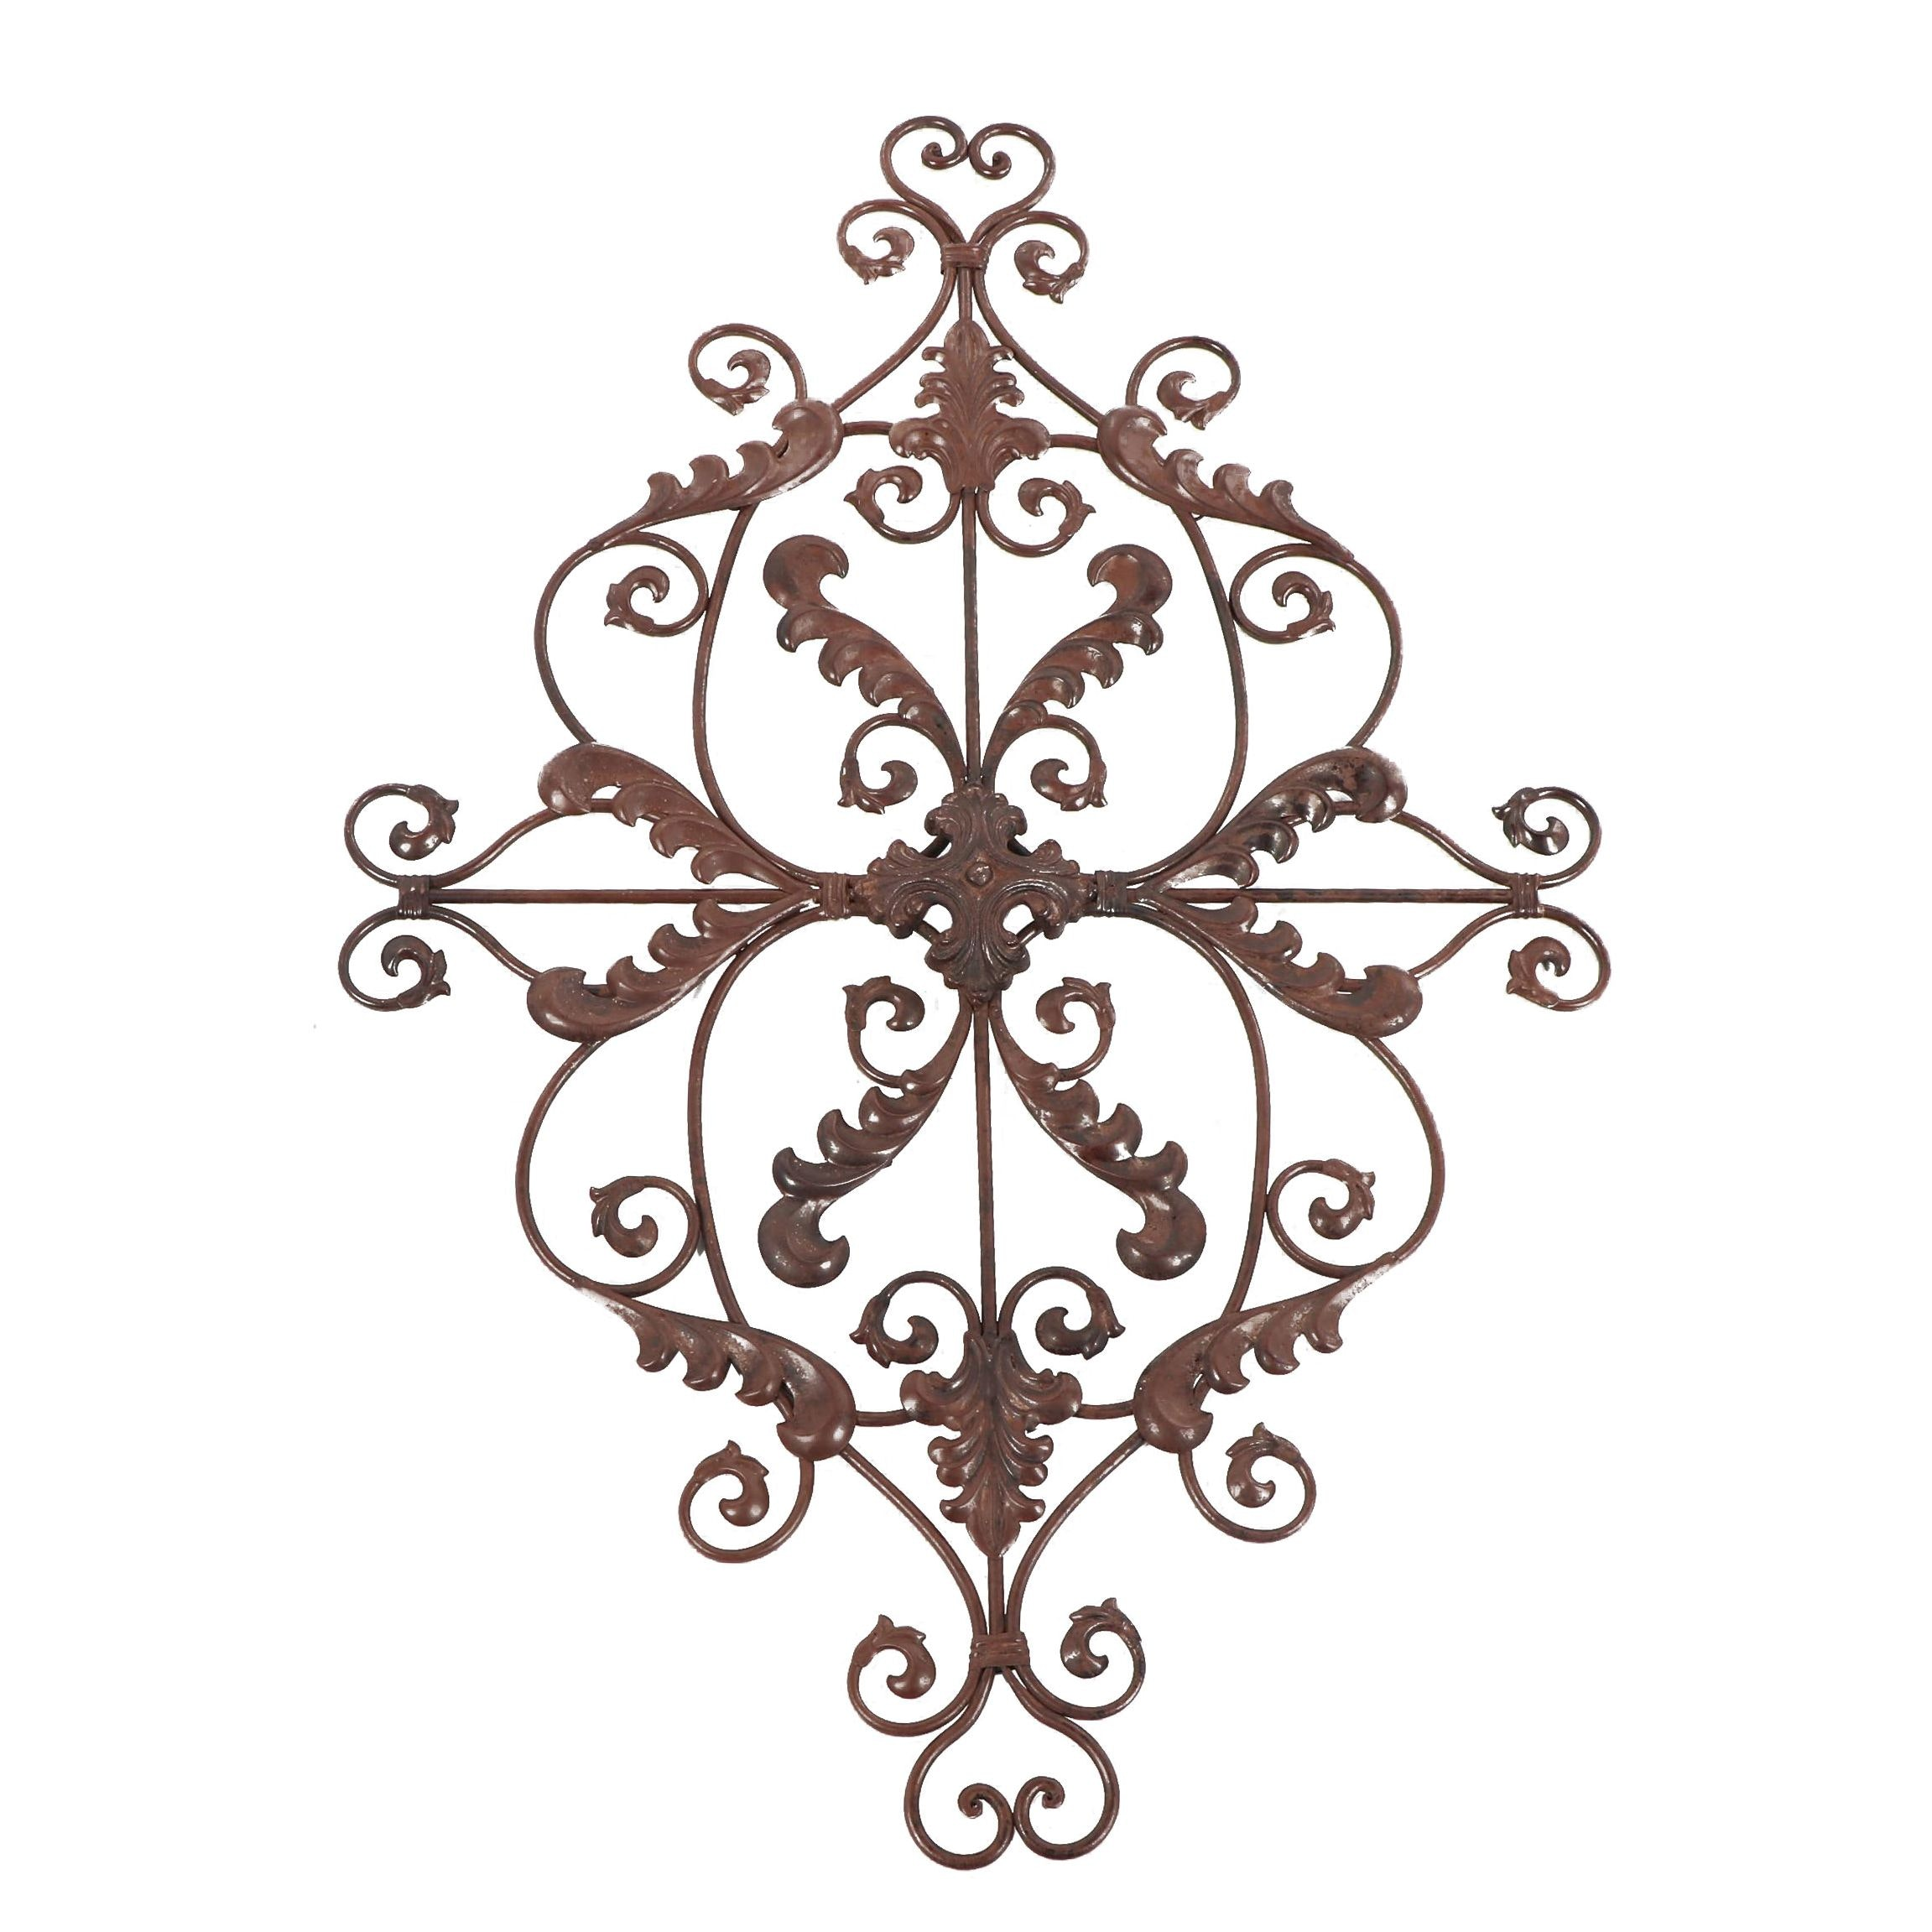 Scrolled Metal Wall Plaque with Leaf Decoration